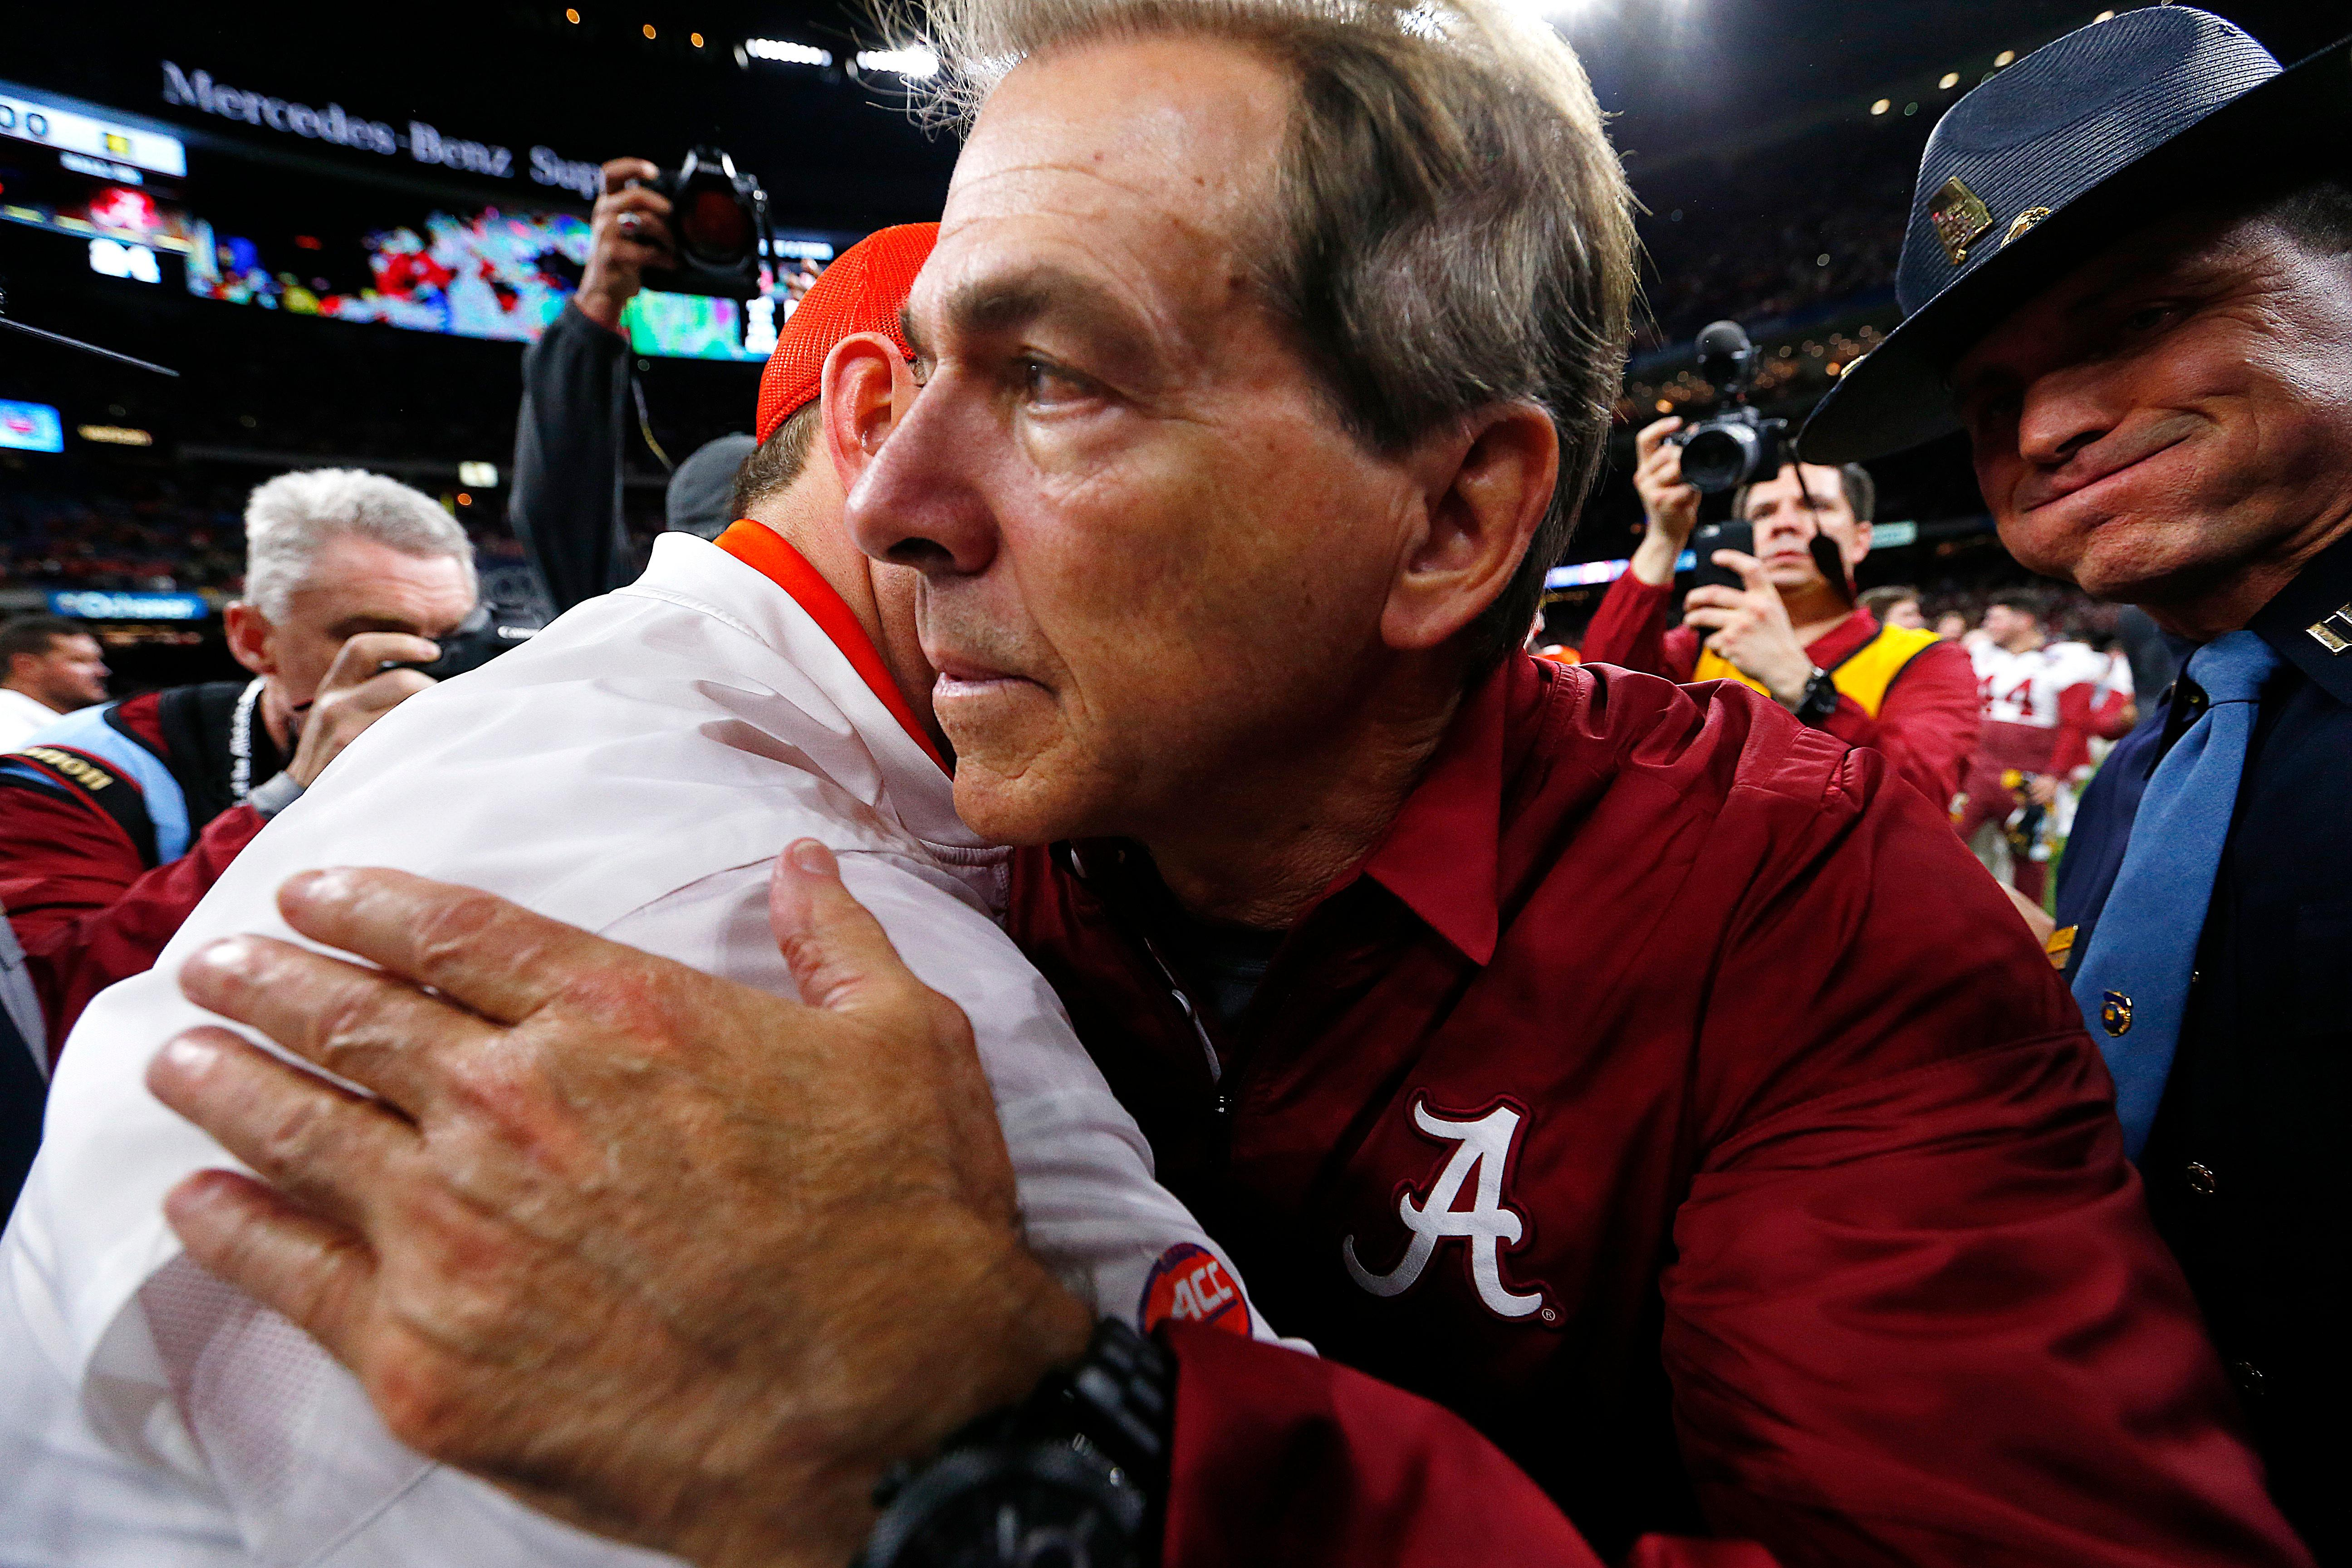 Alabama head coach Nick Saban, right, hugs Clemson head coach Dabo Swinney after the Sugar Bowl semi-final playoff game for the NCAA college football national championship, in New Orleans, Monday, Jan. 1, 2018. Alabama won 24-6 to advance to the national championship game. (AP Photo/Butch Dill)